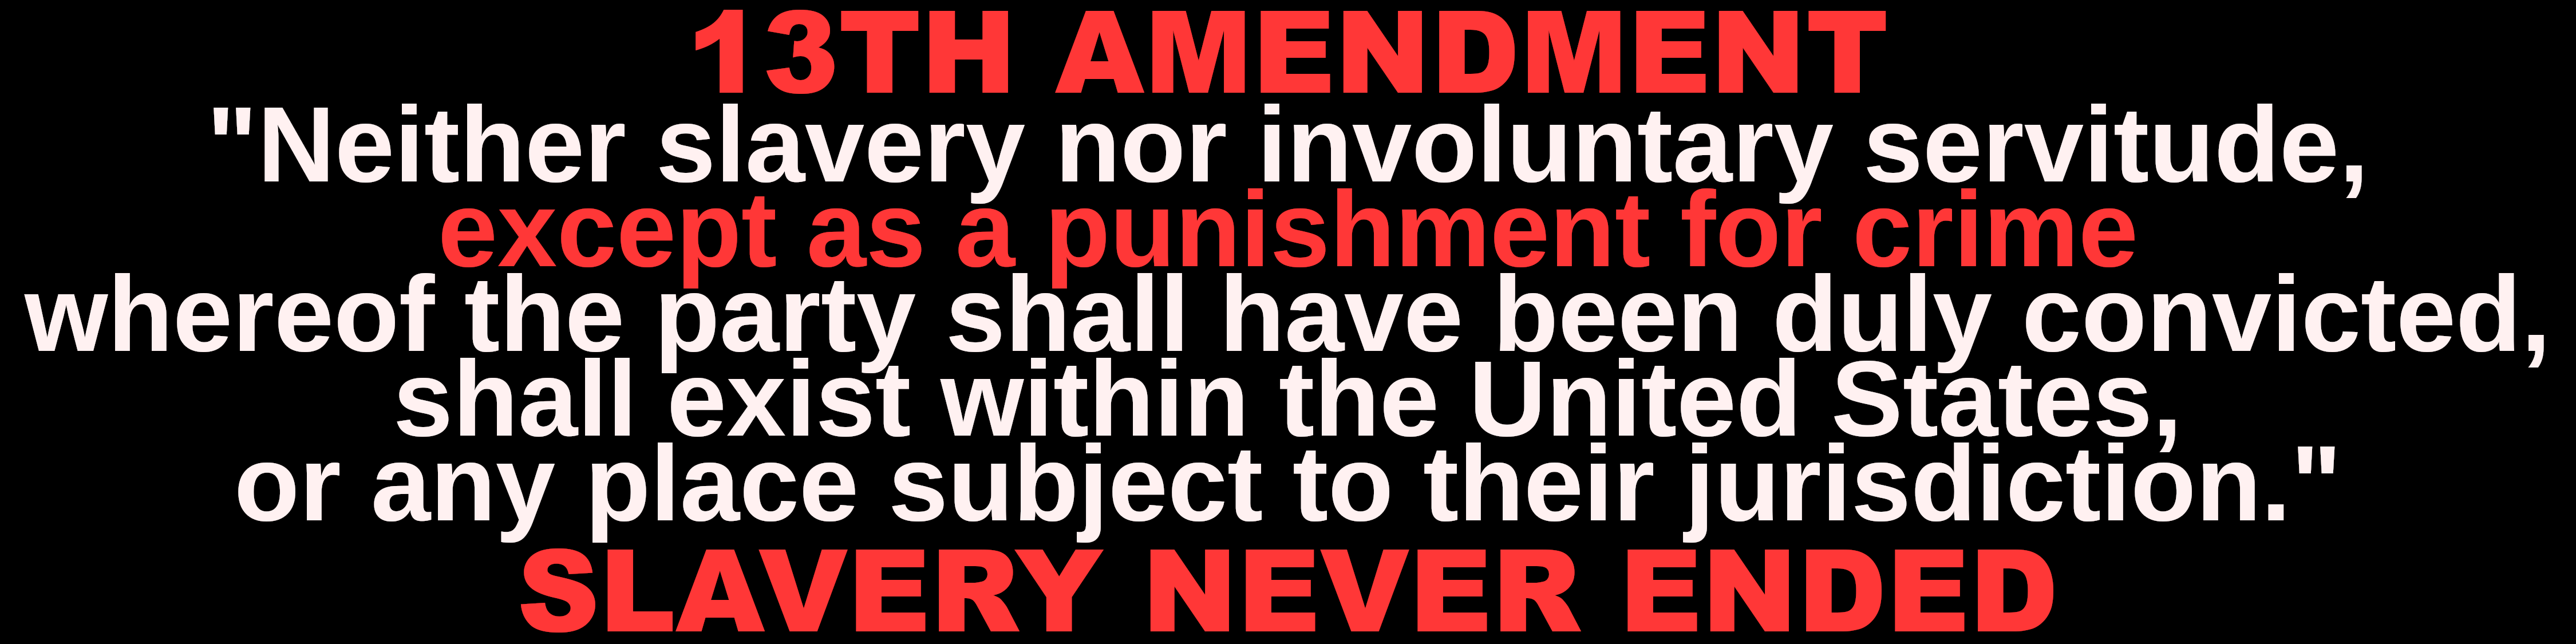 13th_Amendment_bumpersticker-1